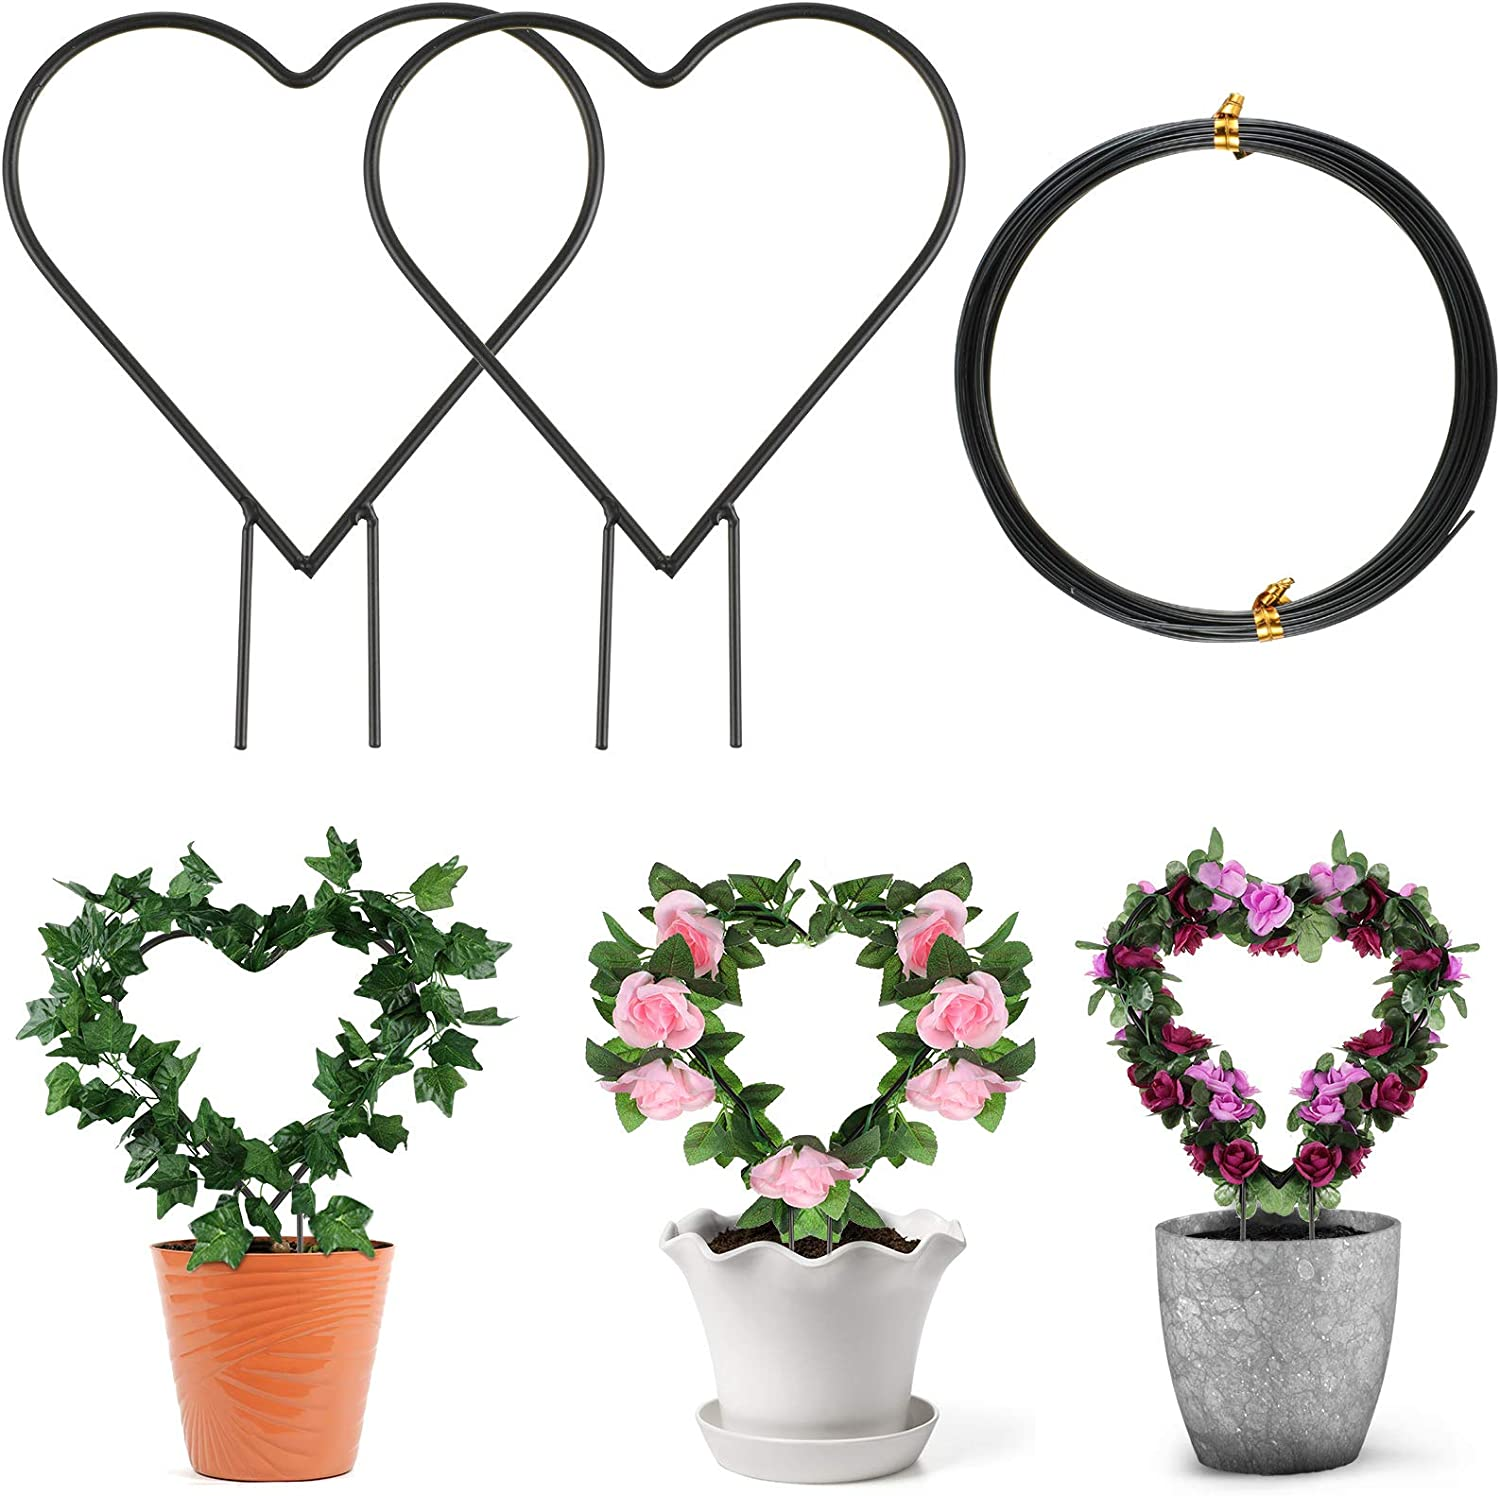 2 Piece Black Metal Garden Trellis 11.8 Inch Heart Shape Vine Iron Plant Support Potted Plant Climbing Holder Rack Decorative Plant Support Stake with 5.5 Yard Aluminum Wire for Climbing Plant Flower